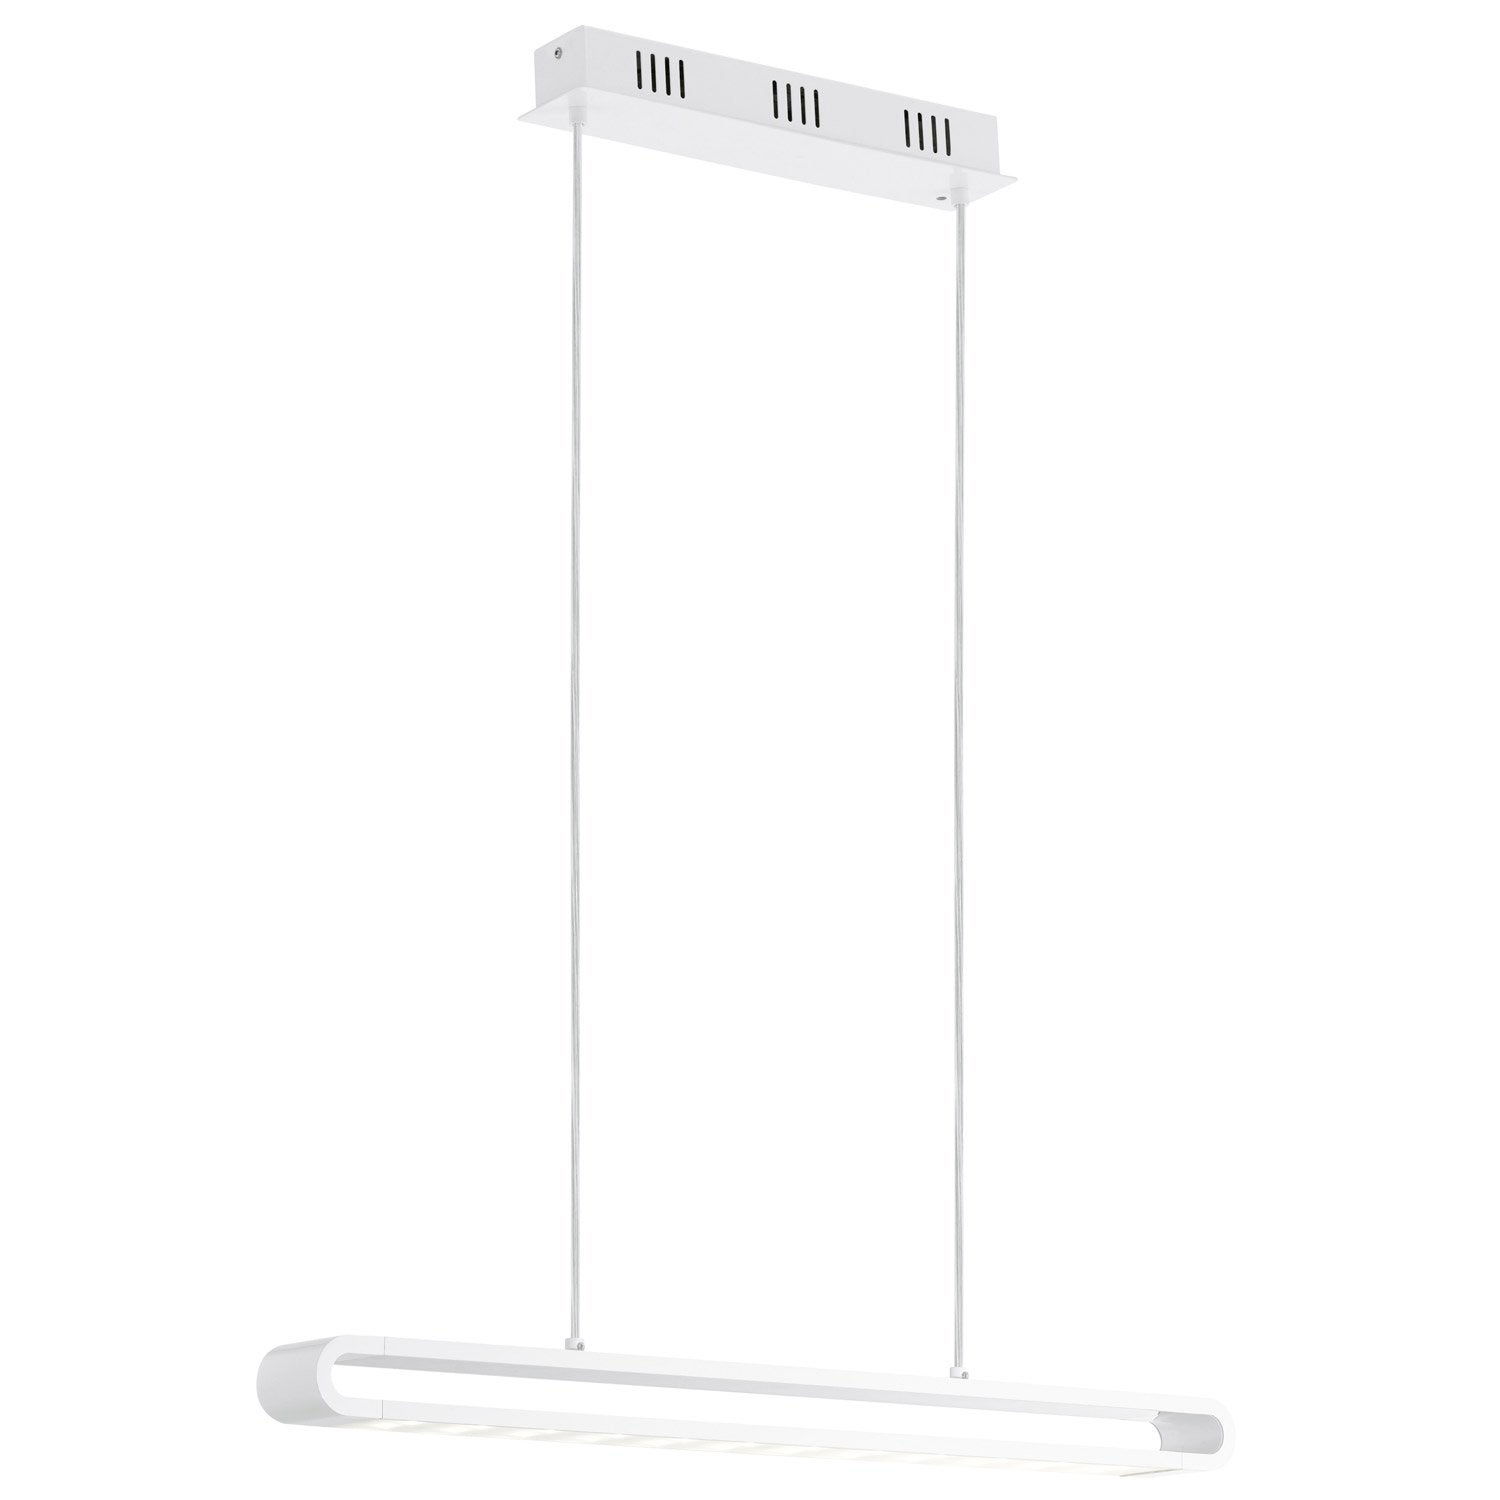 Suspension, led intégrée design Perillo métal blanc 2 x 24 W EGLO